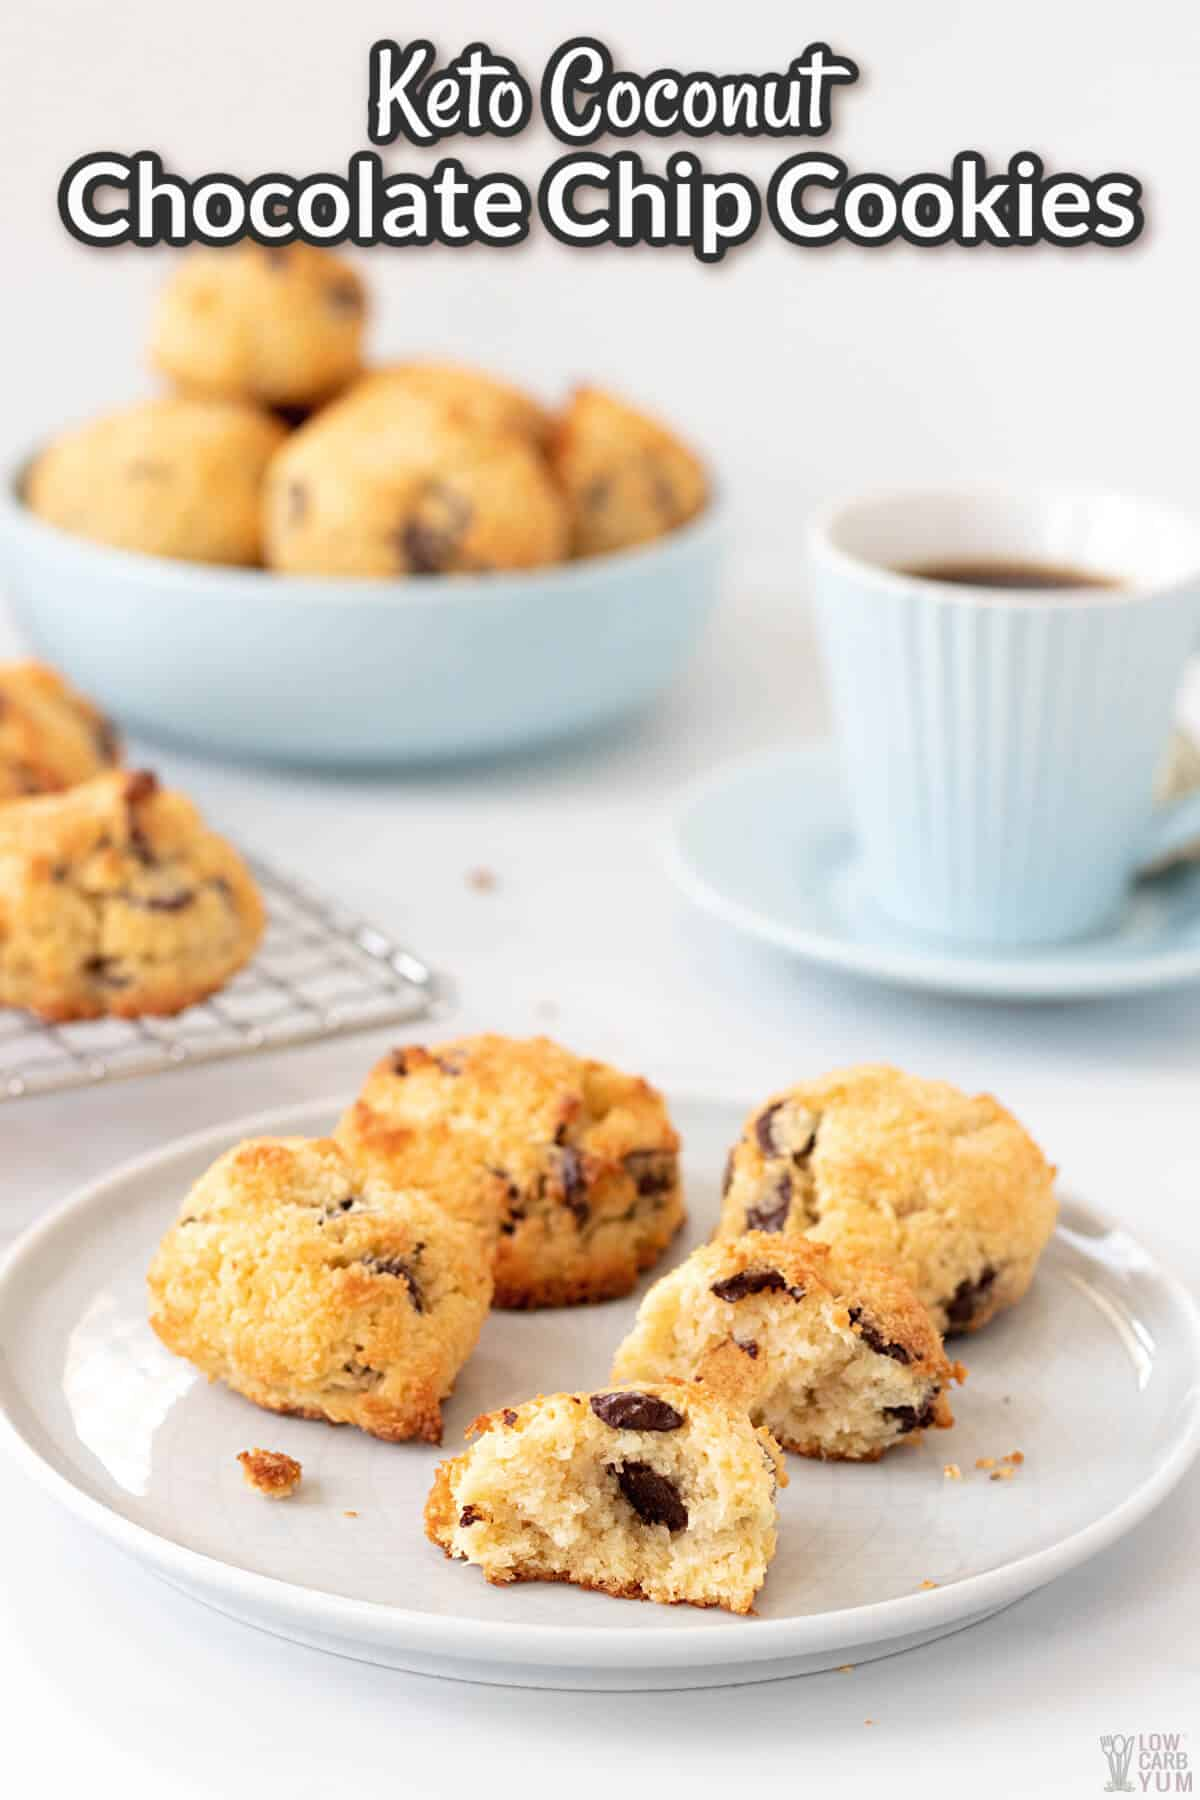 keto coconut chocolate chip cookies recipe cover image